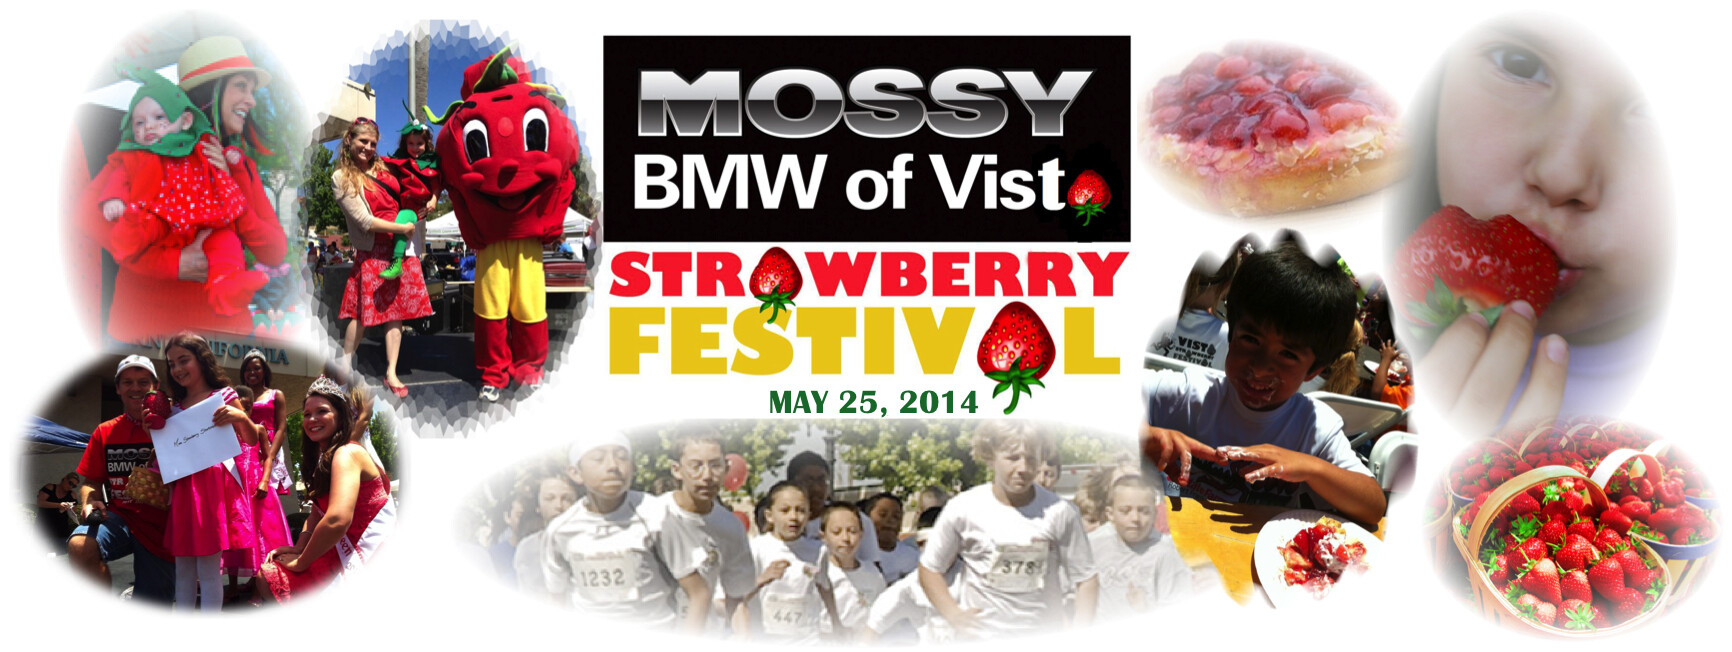 2014 Vista Strawberry Festival Cover Photo